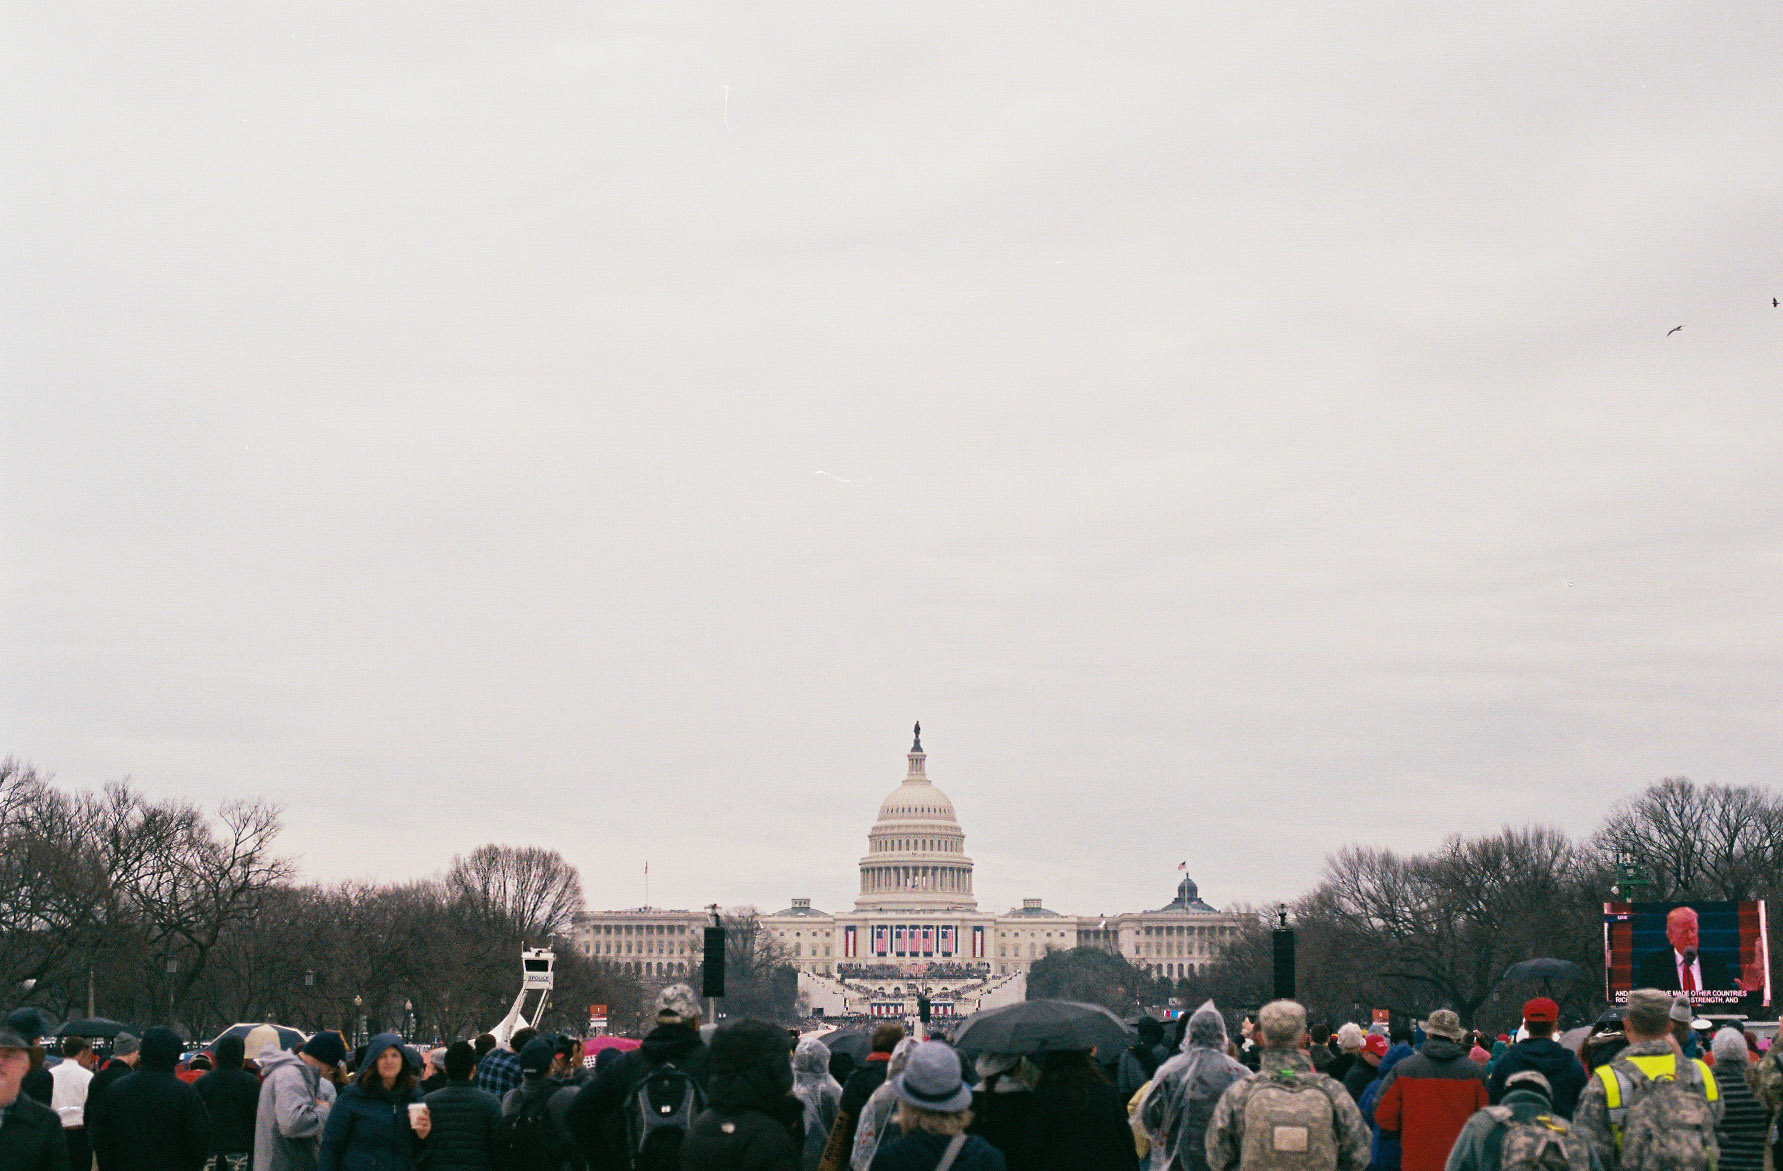 Inauguration Day 2017 35mm-21.jpg